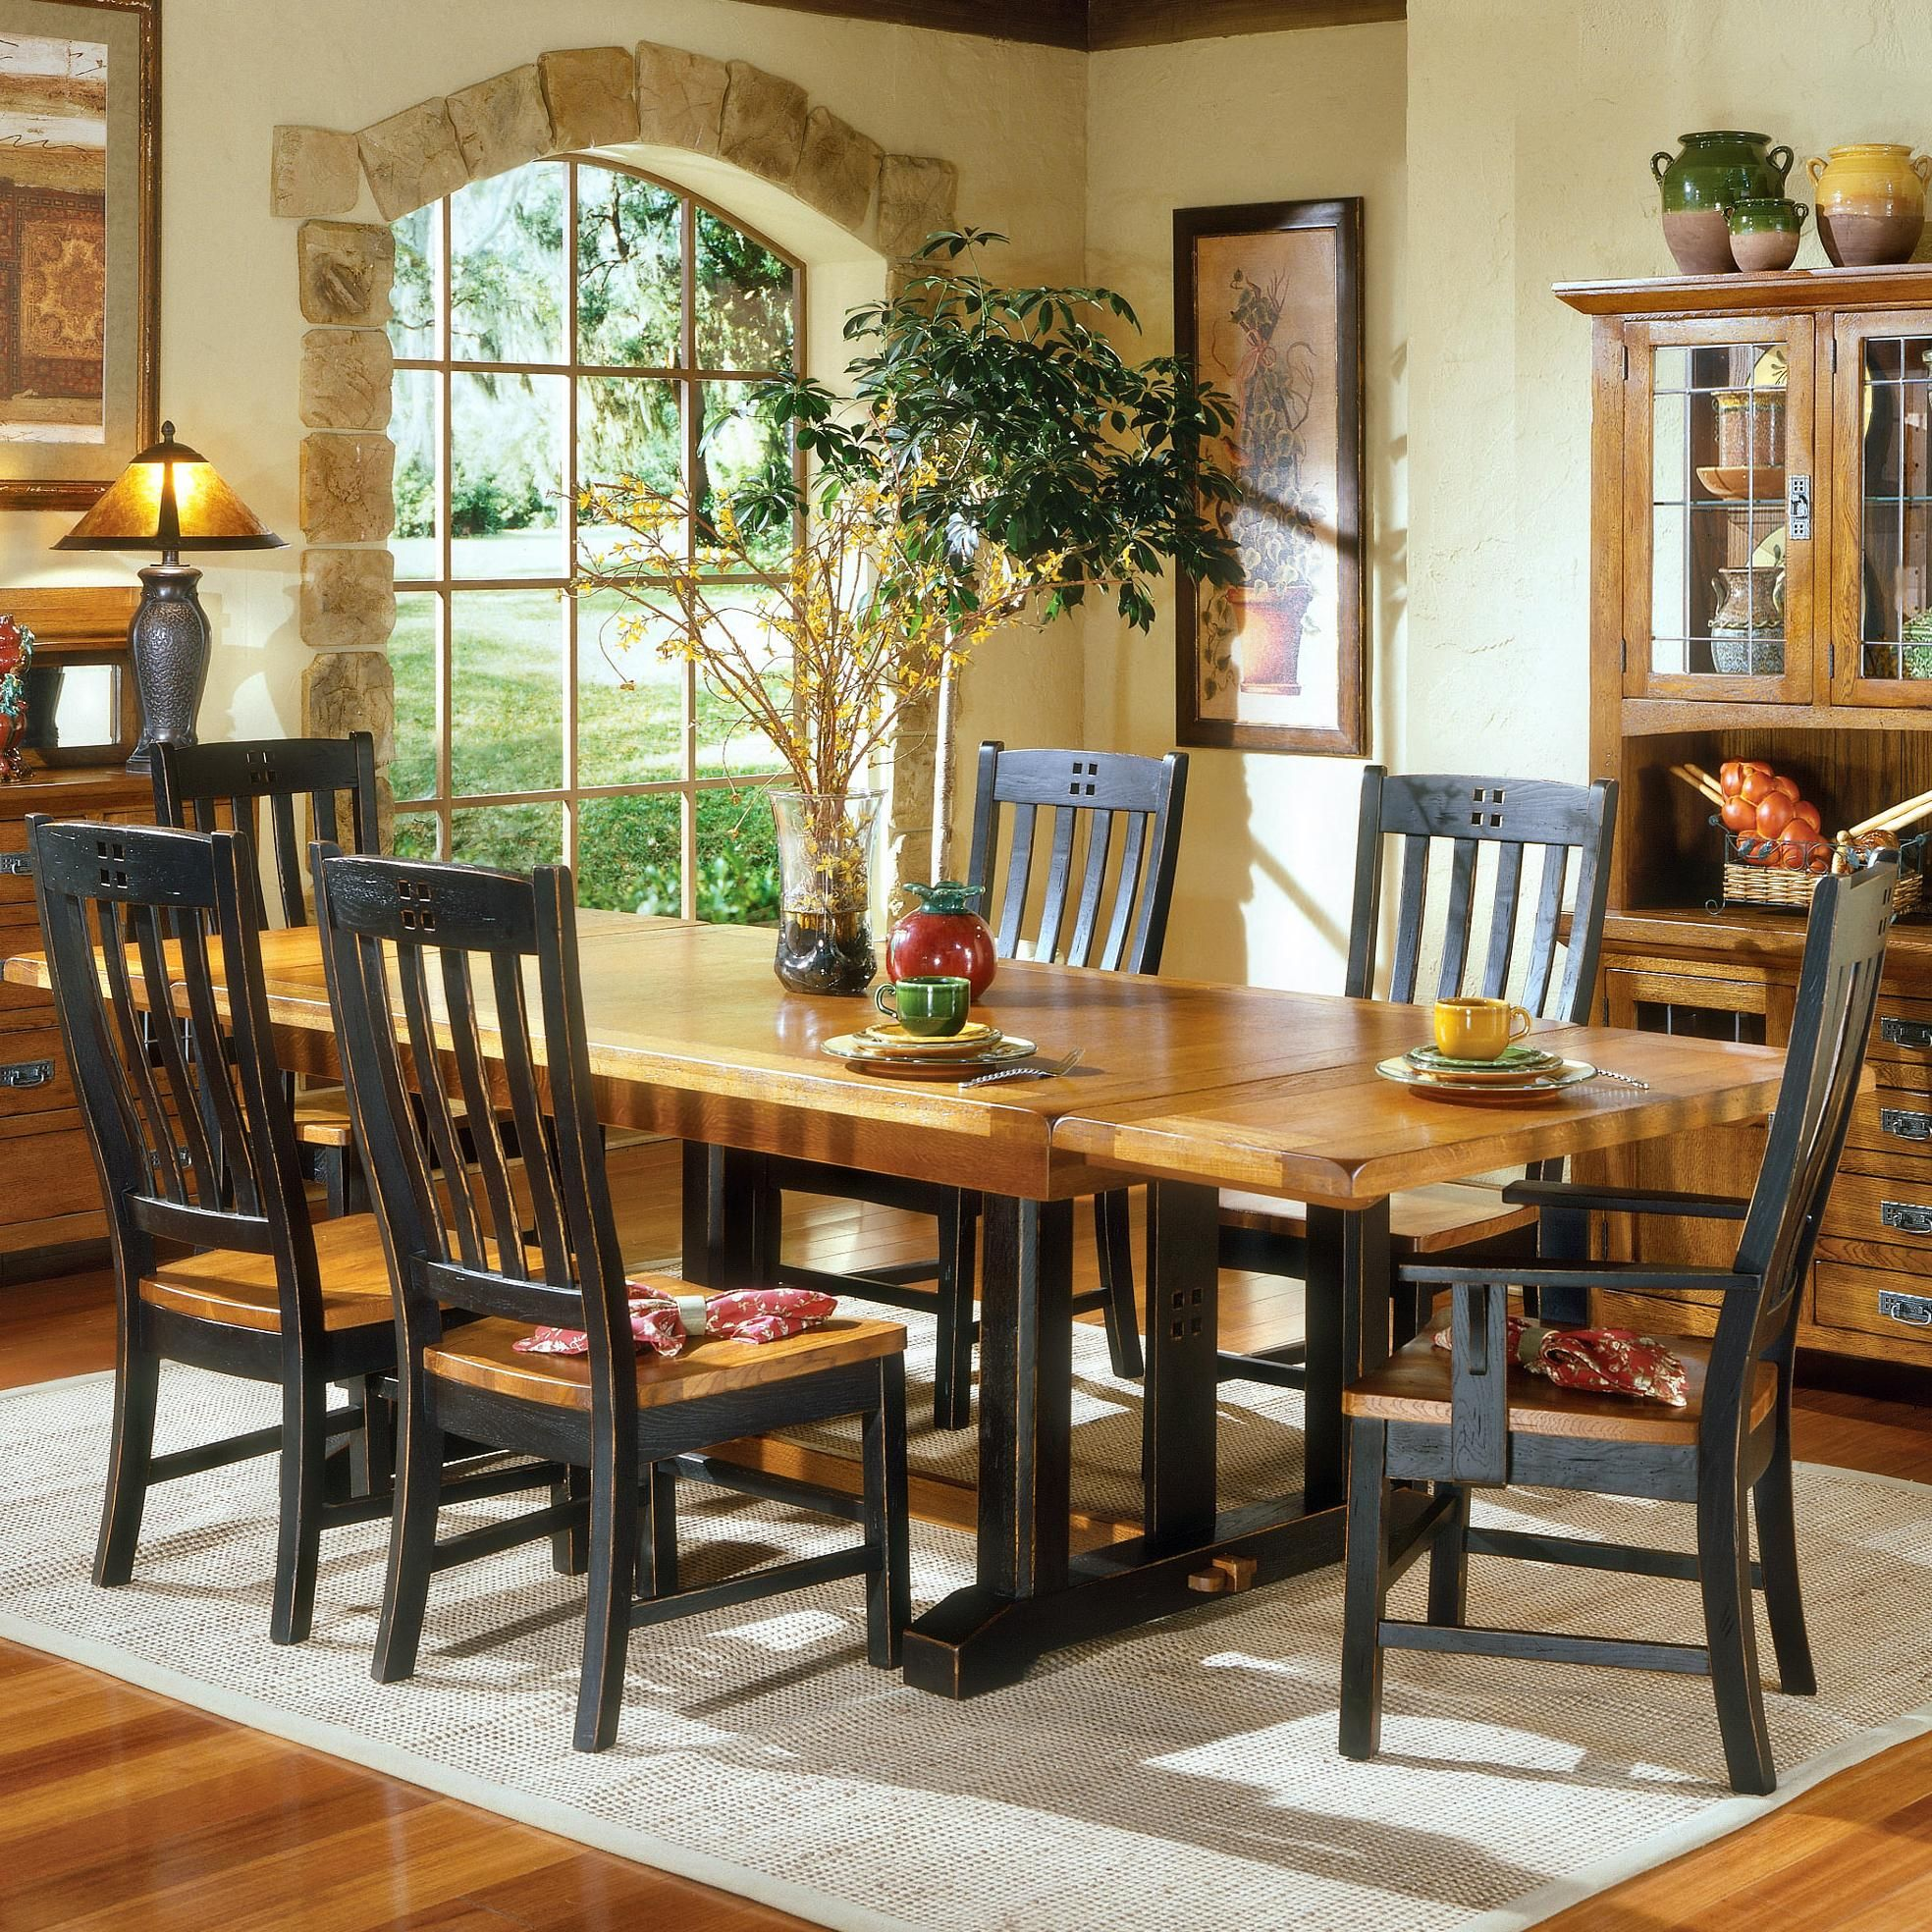 Dining Room Furniture Rustic Intercon Rustic Mission Refectory Dining Table Sheely 39s